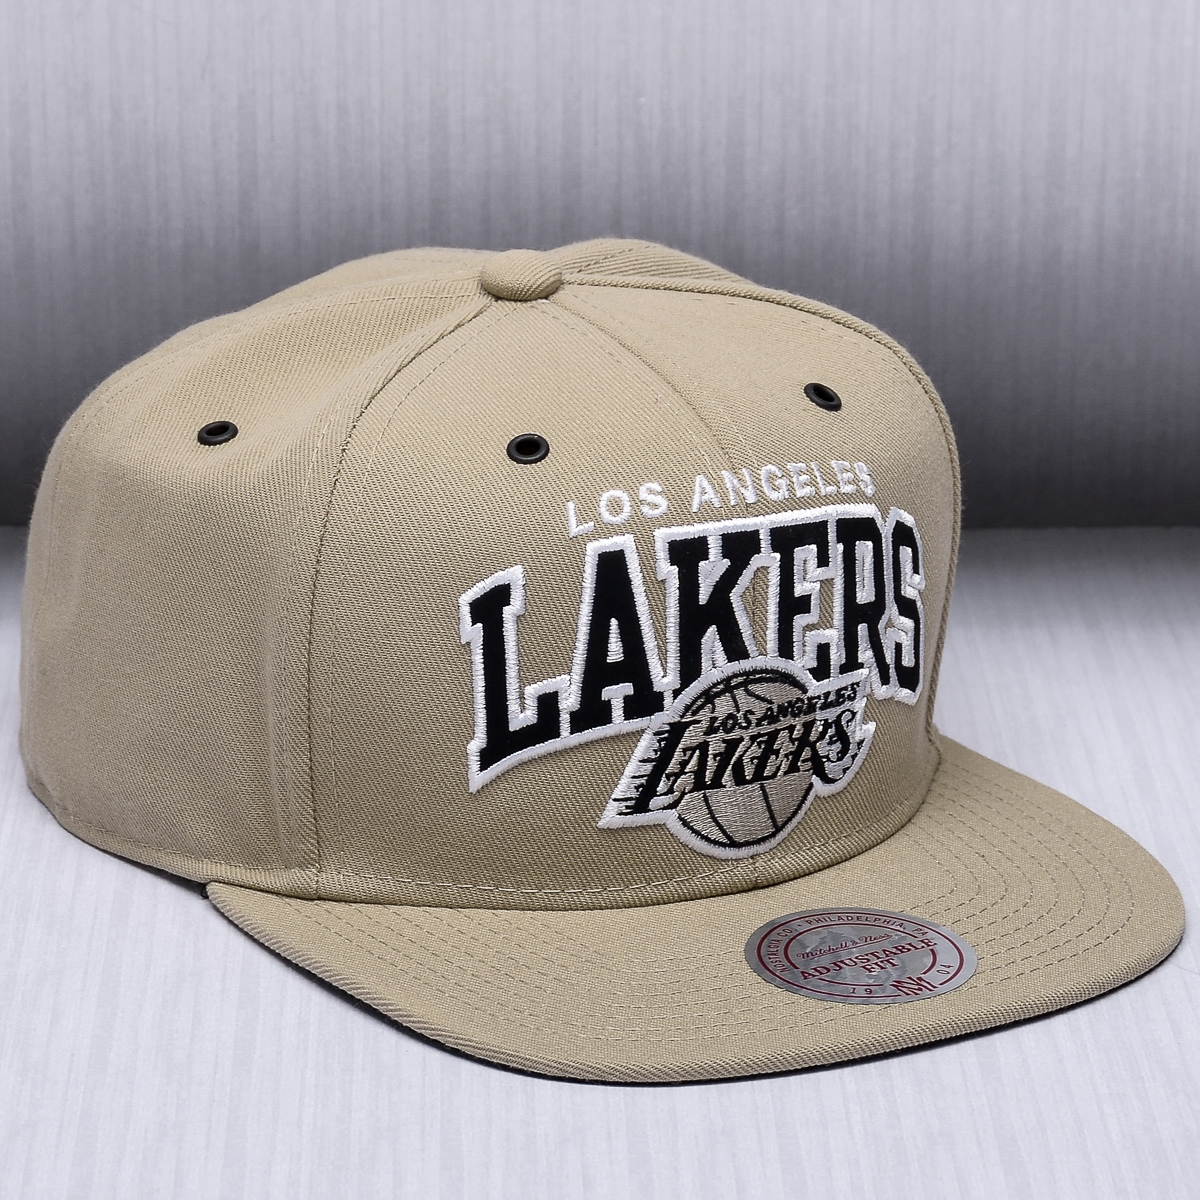 buy popular f6128 31e66 Mitchell   Ness NBA Los Angeles Lakers Black And White Arch Snapback Cap -  NBA Shop Los Angeles Lakers Merchandise - Superfanas.lt